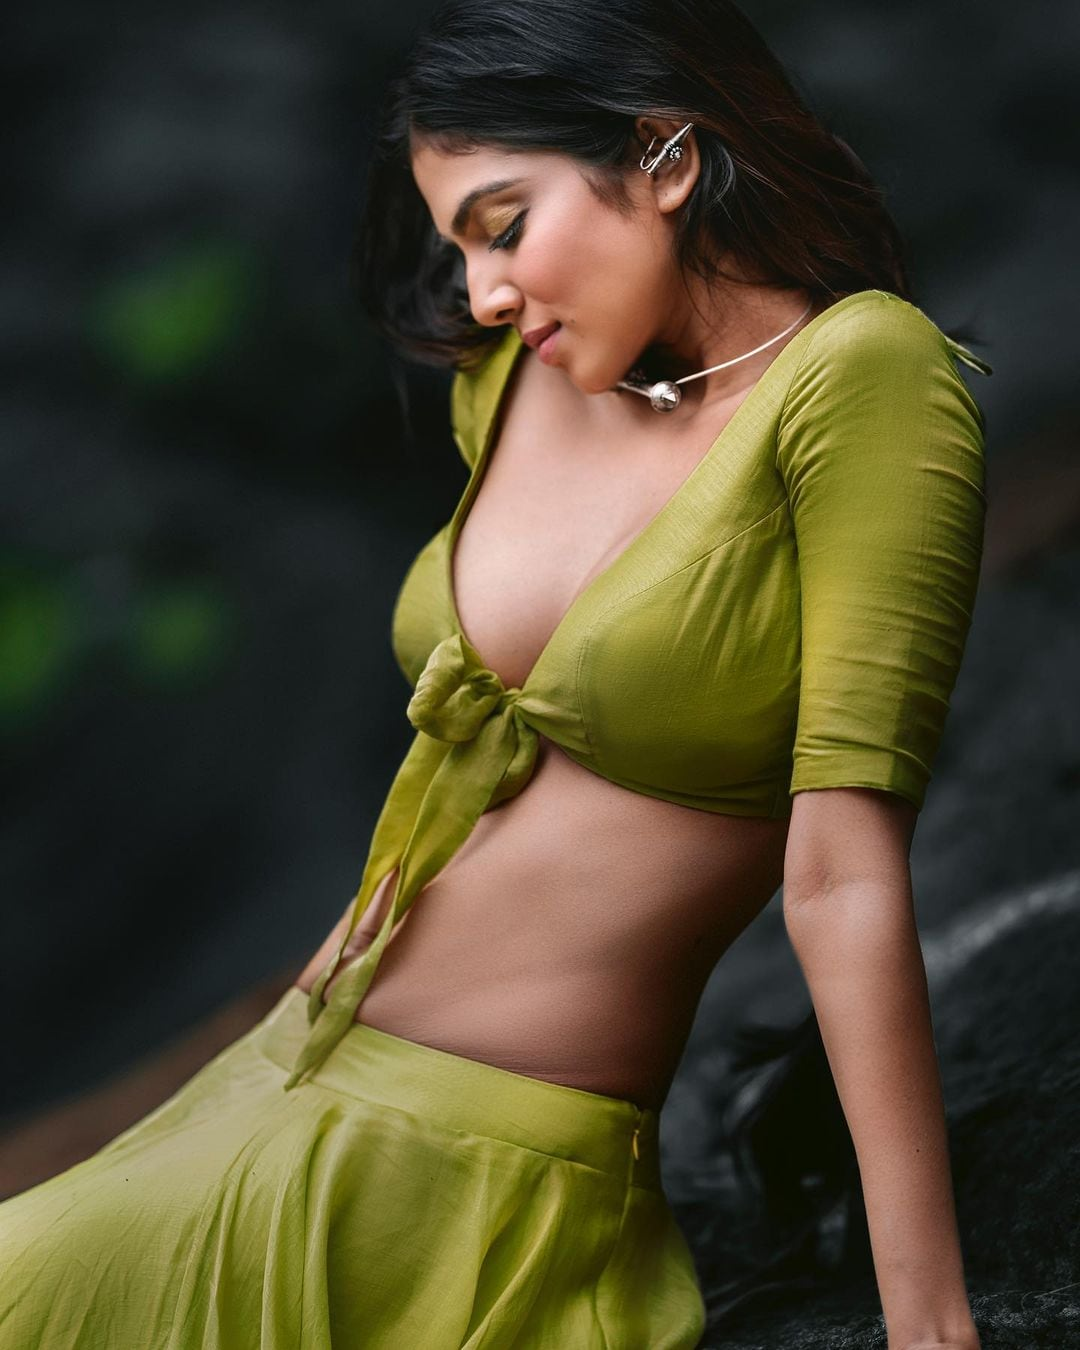 Malavika Mohanan is too hot to handle in this pic. (Image: Instagram)